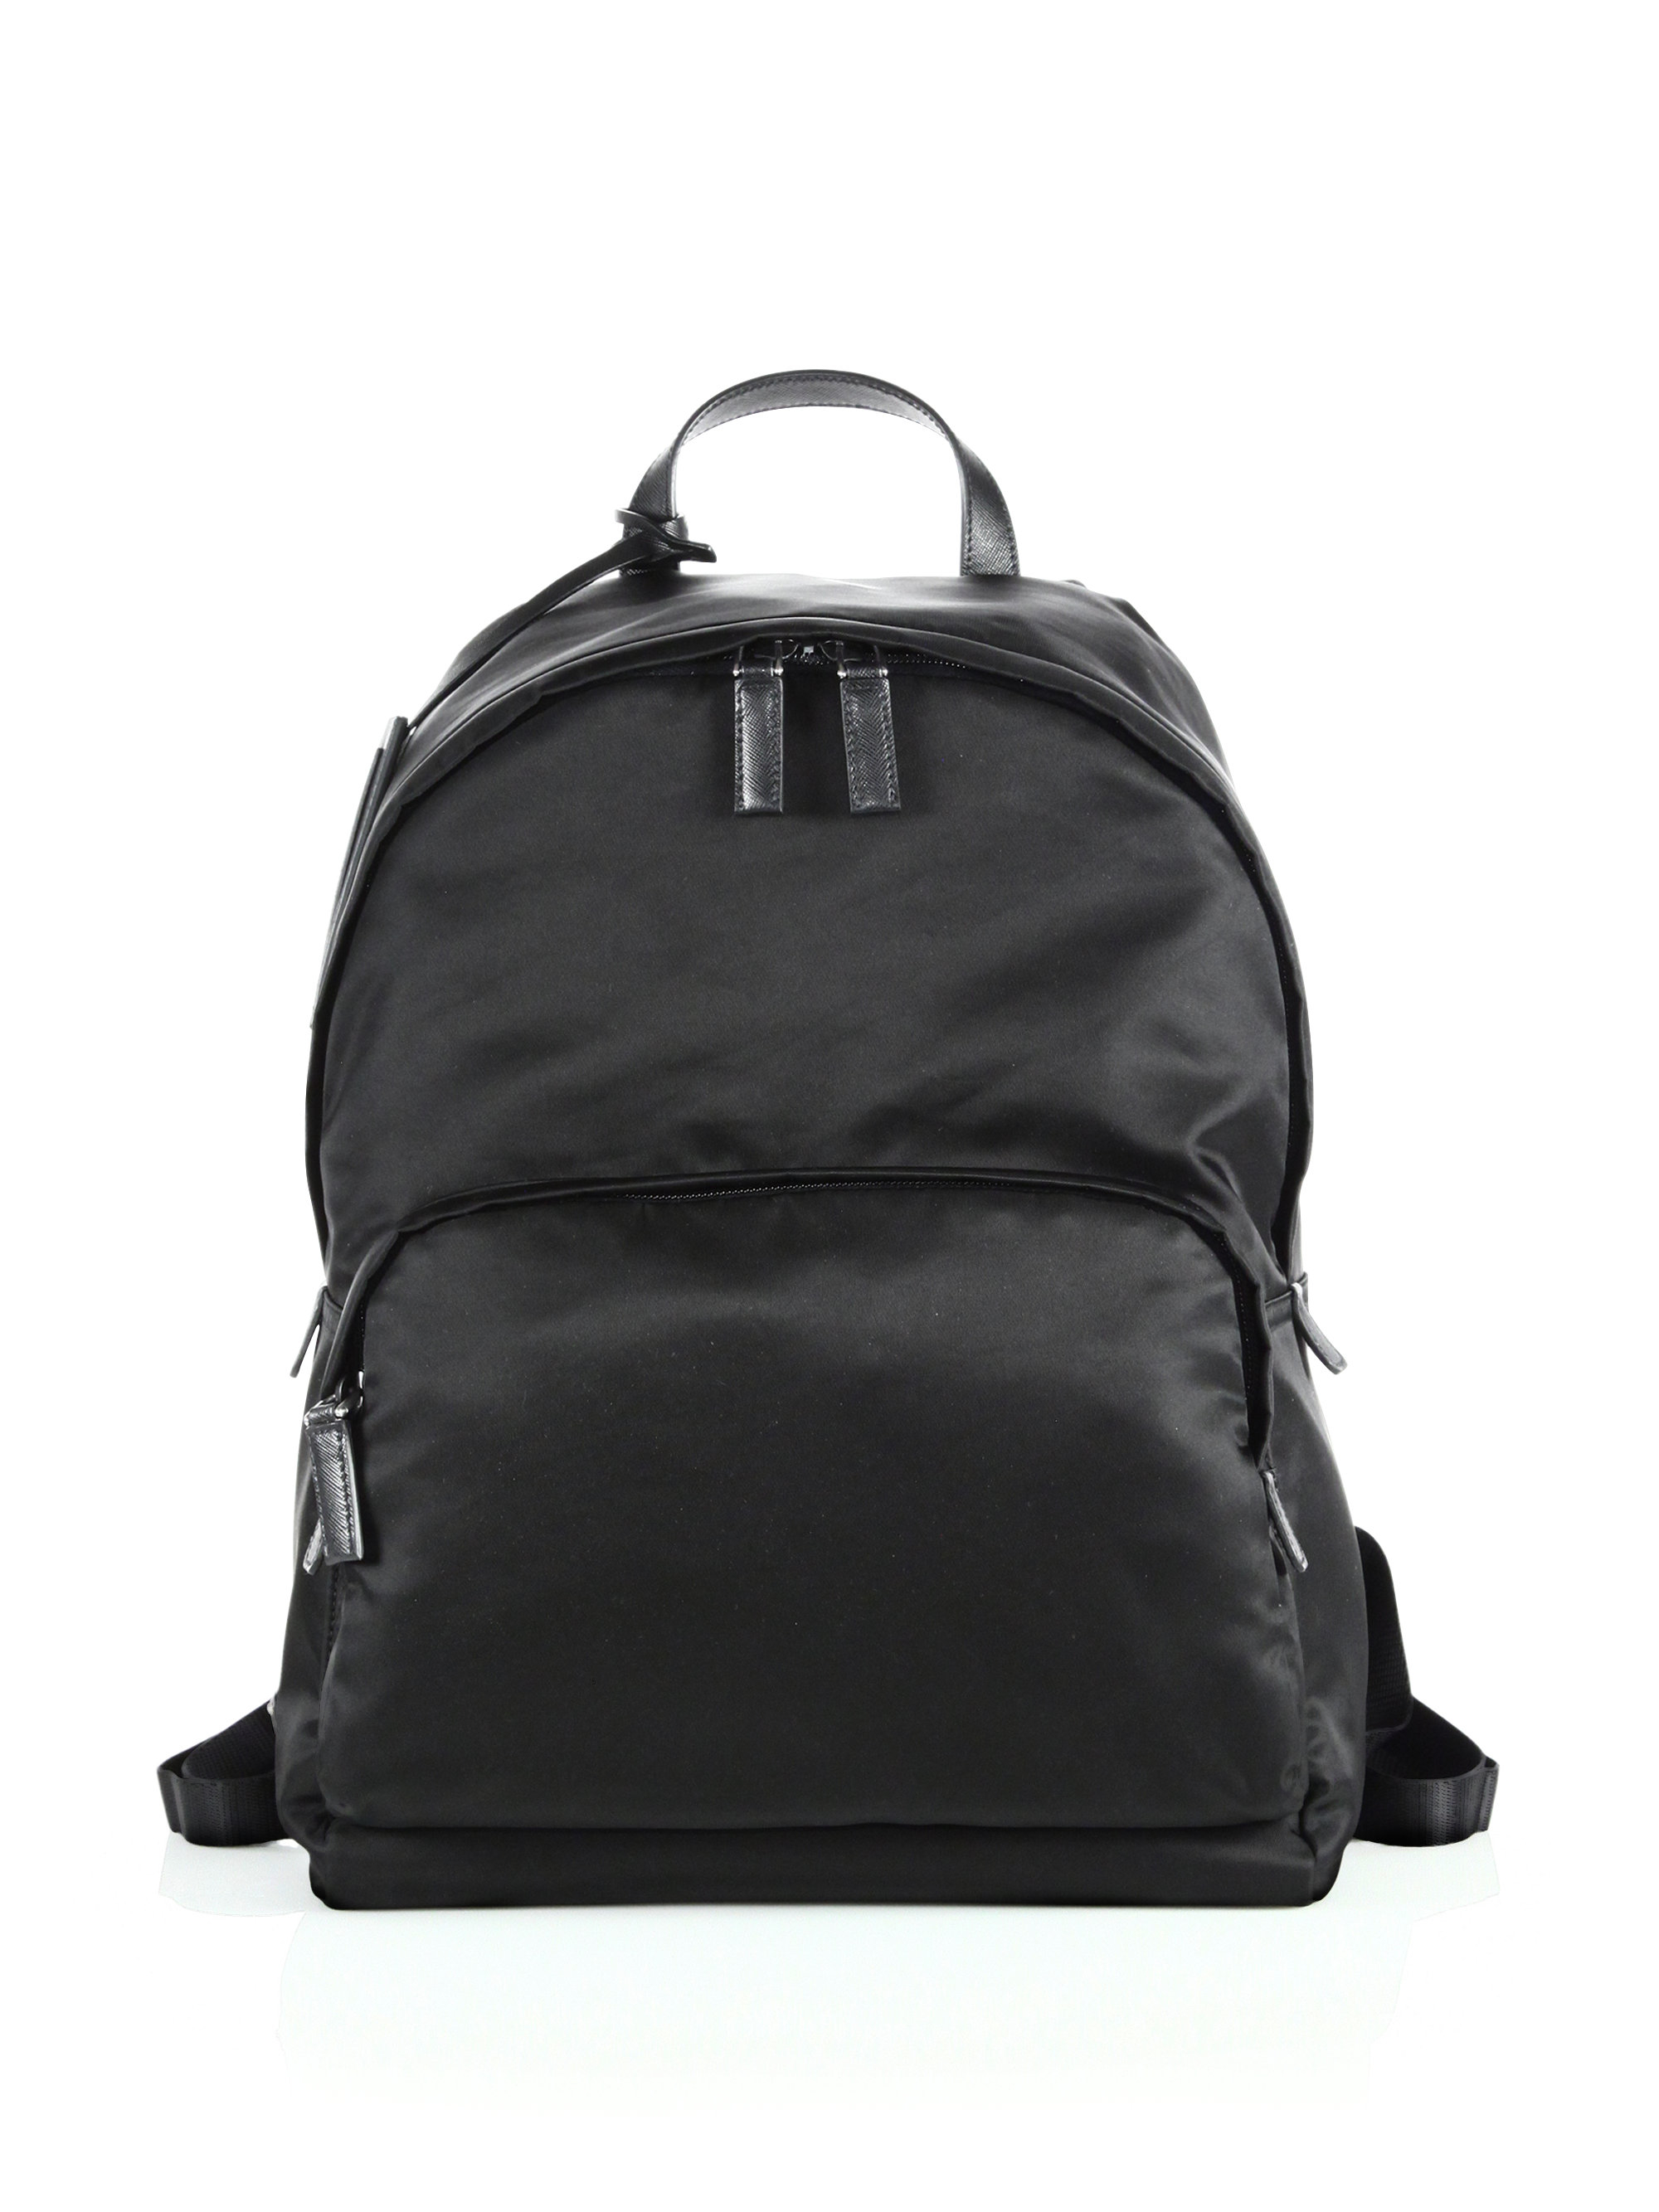 e8af9b55687b australia lyst prada zaino backpack in black for men 12ca9 cbfd3